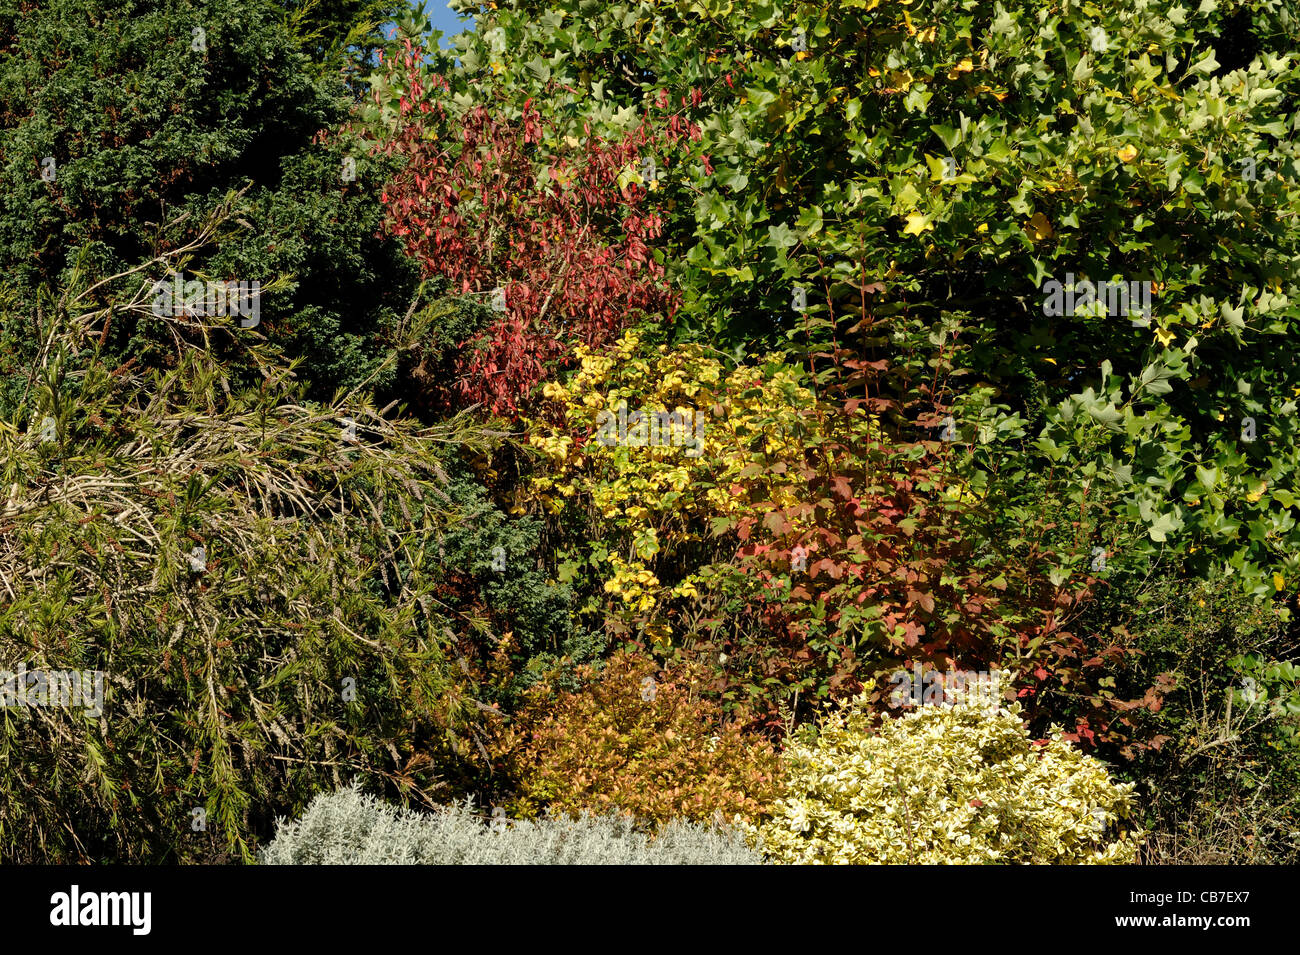 Terraced Devon garden shrubs and small trees with a range of autumn colours - Stock Image